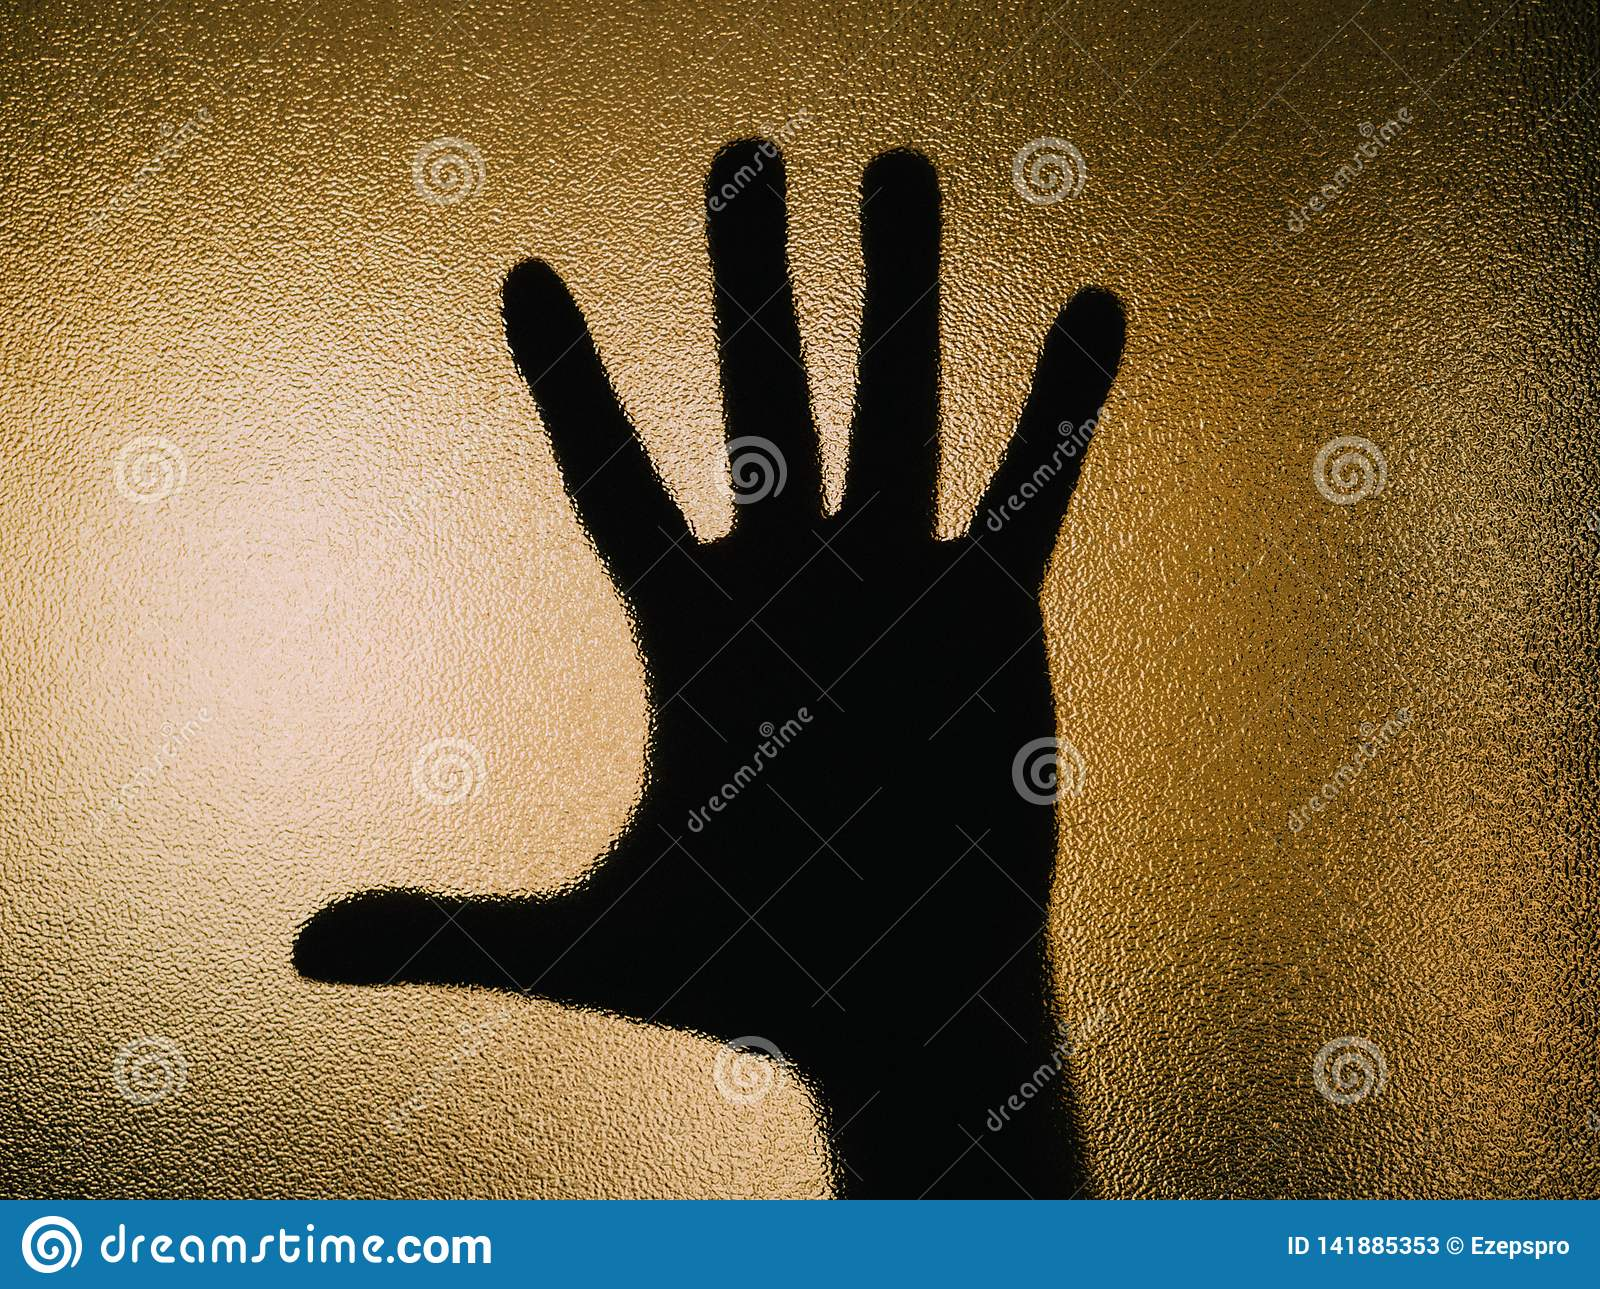 Silhouette of open hand on a glass